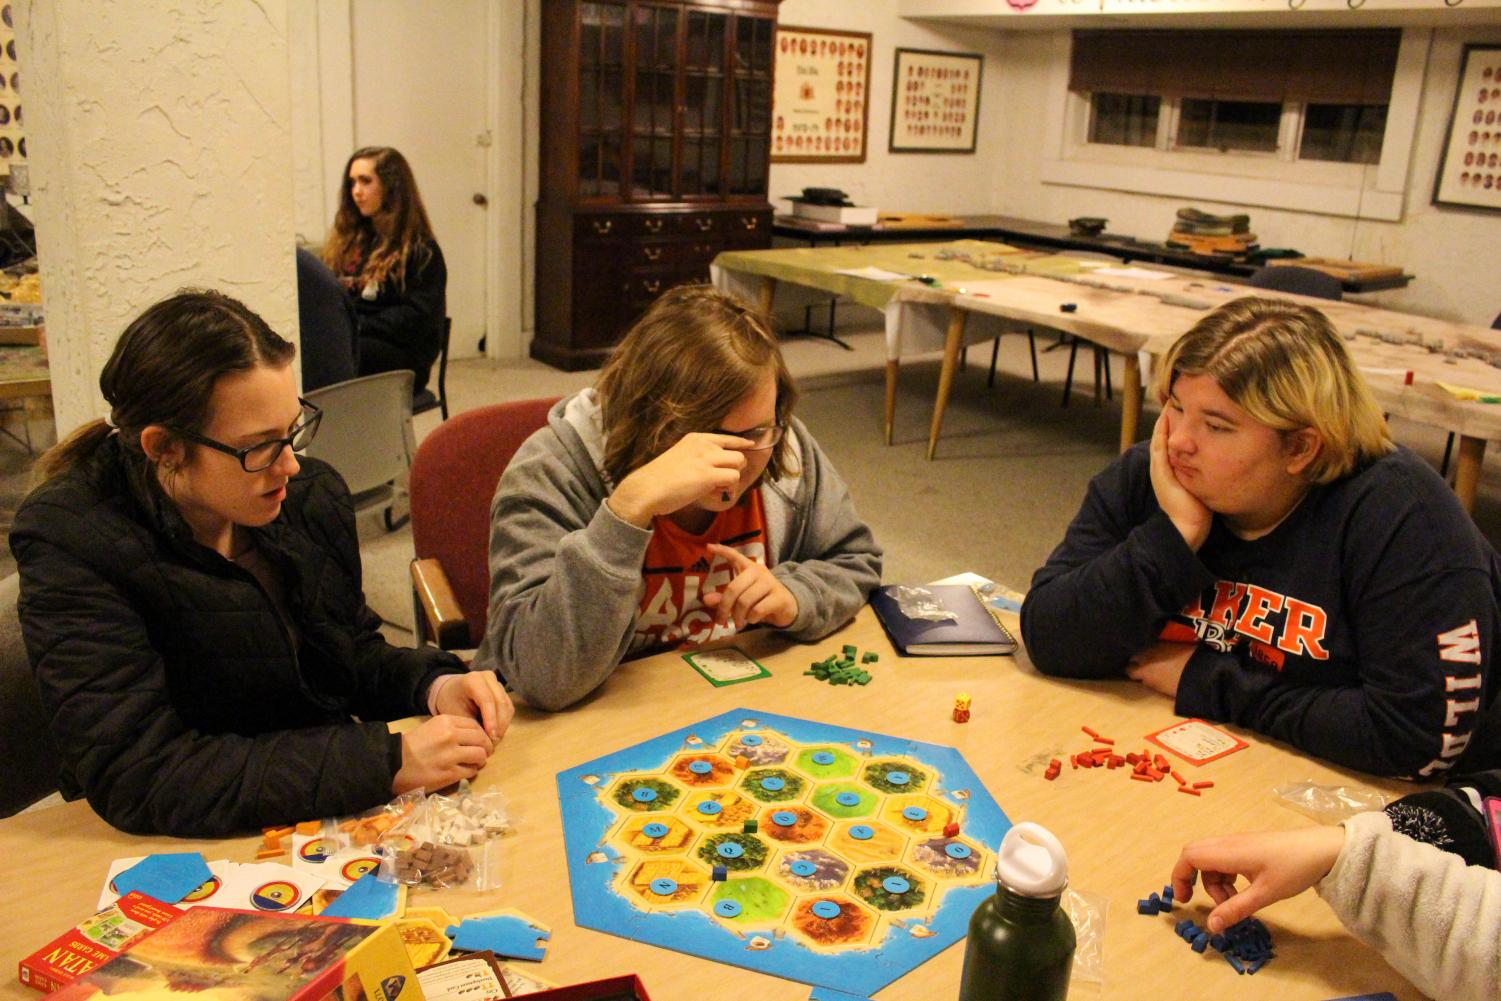 Sophomore Carly Hassenstab, Freshman Chance Prosser and Sophomore Kaycee Bauer, play Settlers of Catan, one of the many games offered at BUGS. Catan is an analytical game that challenges players to settle different lands and produce civilizations.